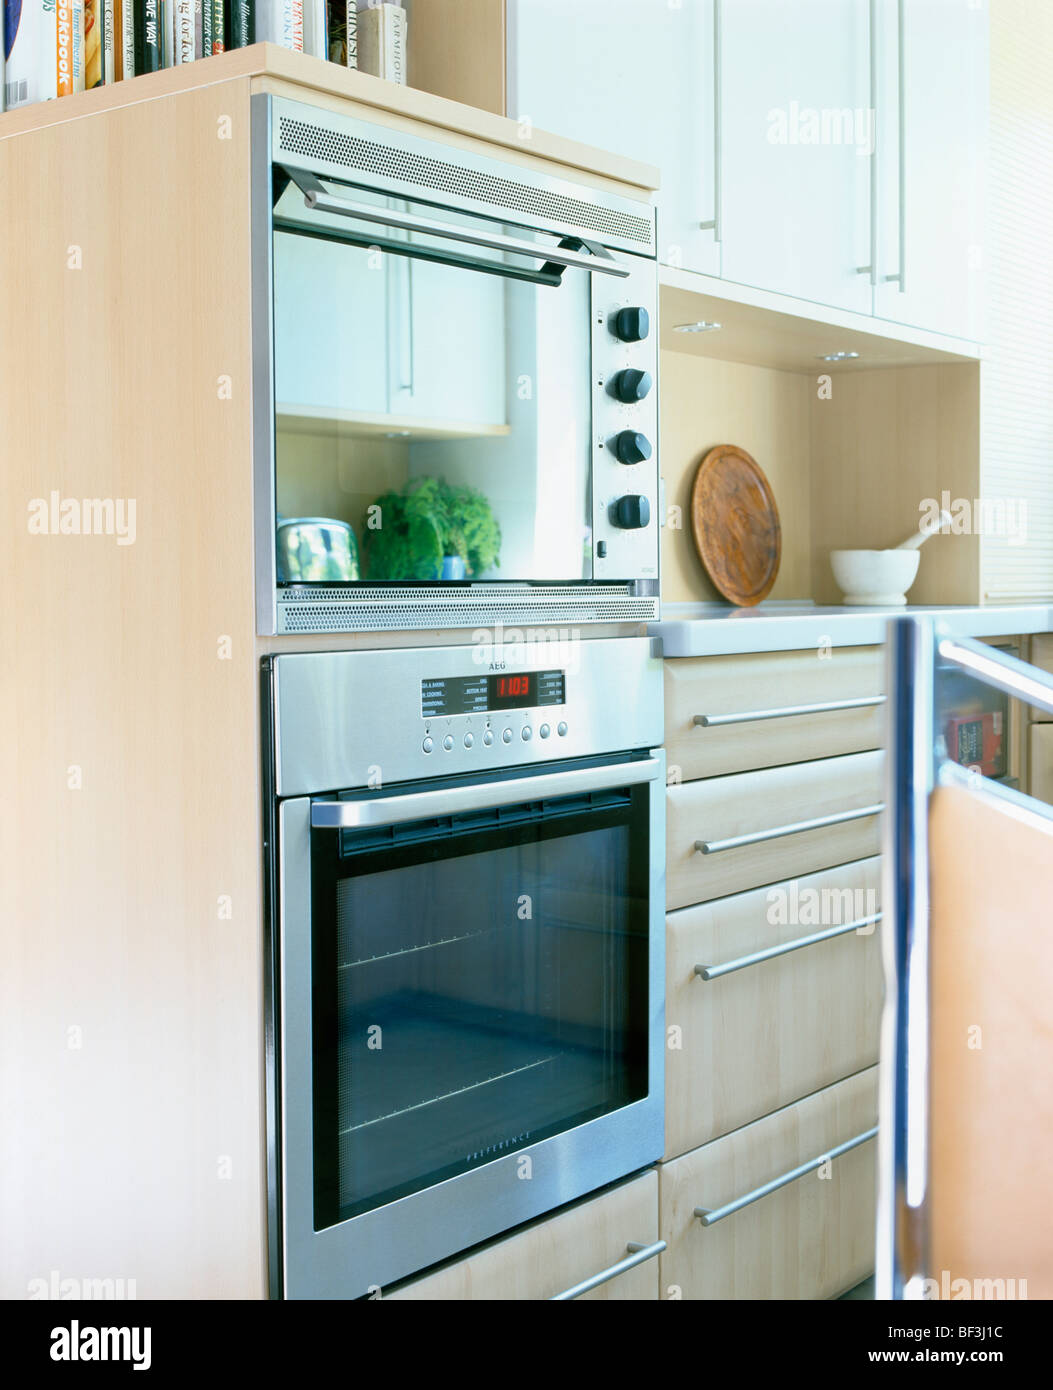 Modern Details Appliances Ovens Stock Photos & Modern Details ...